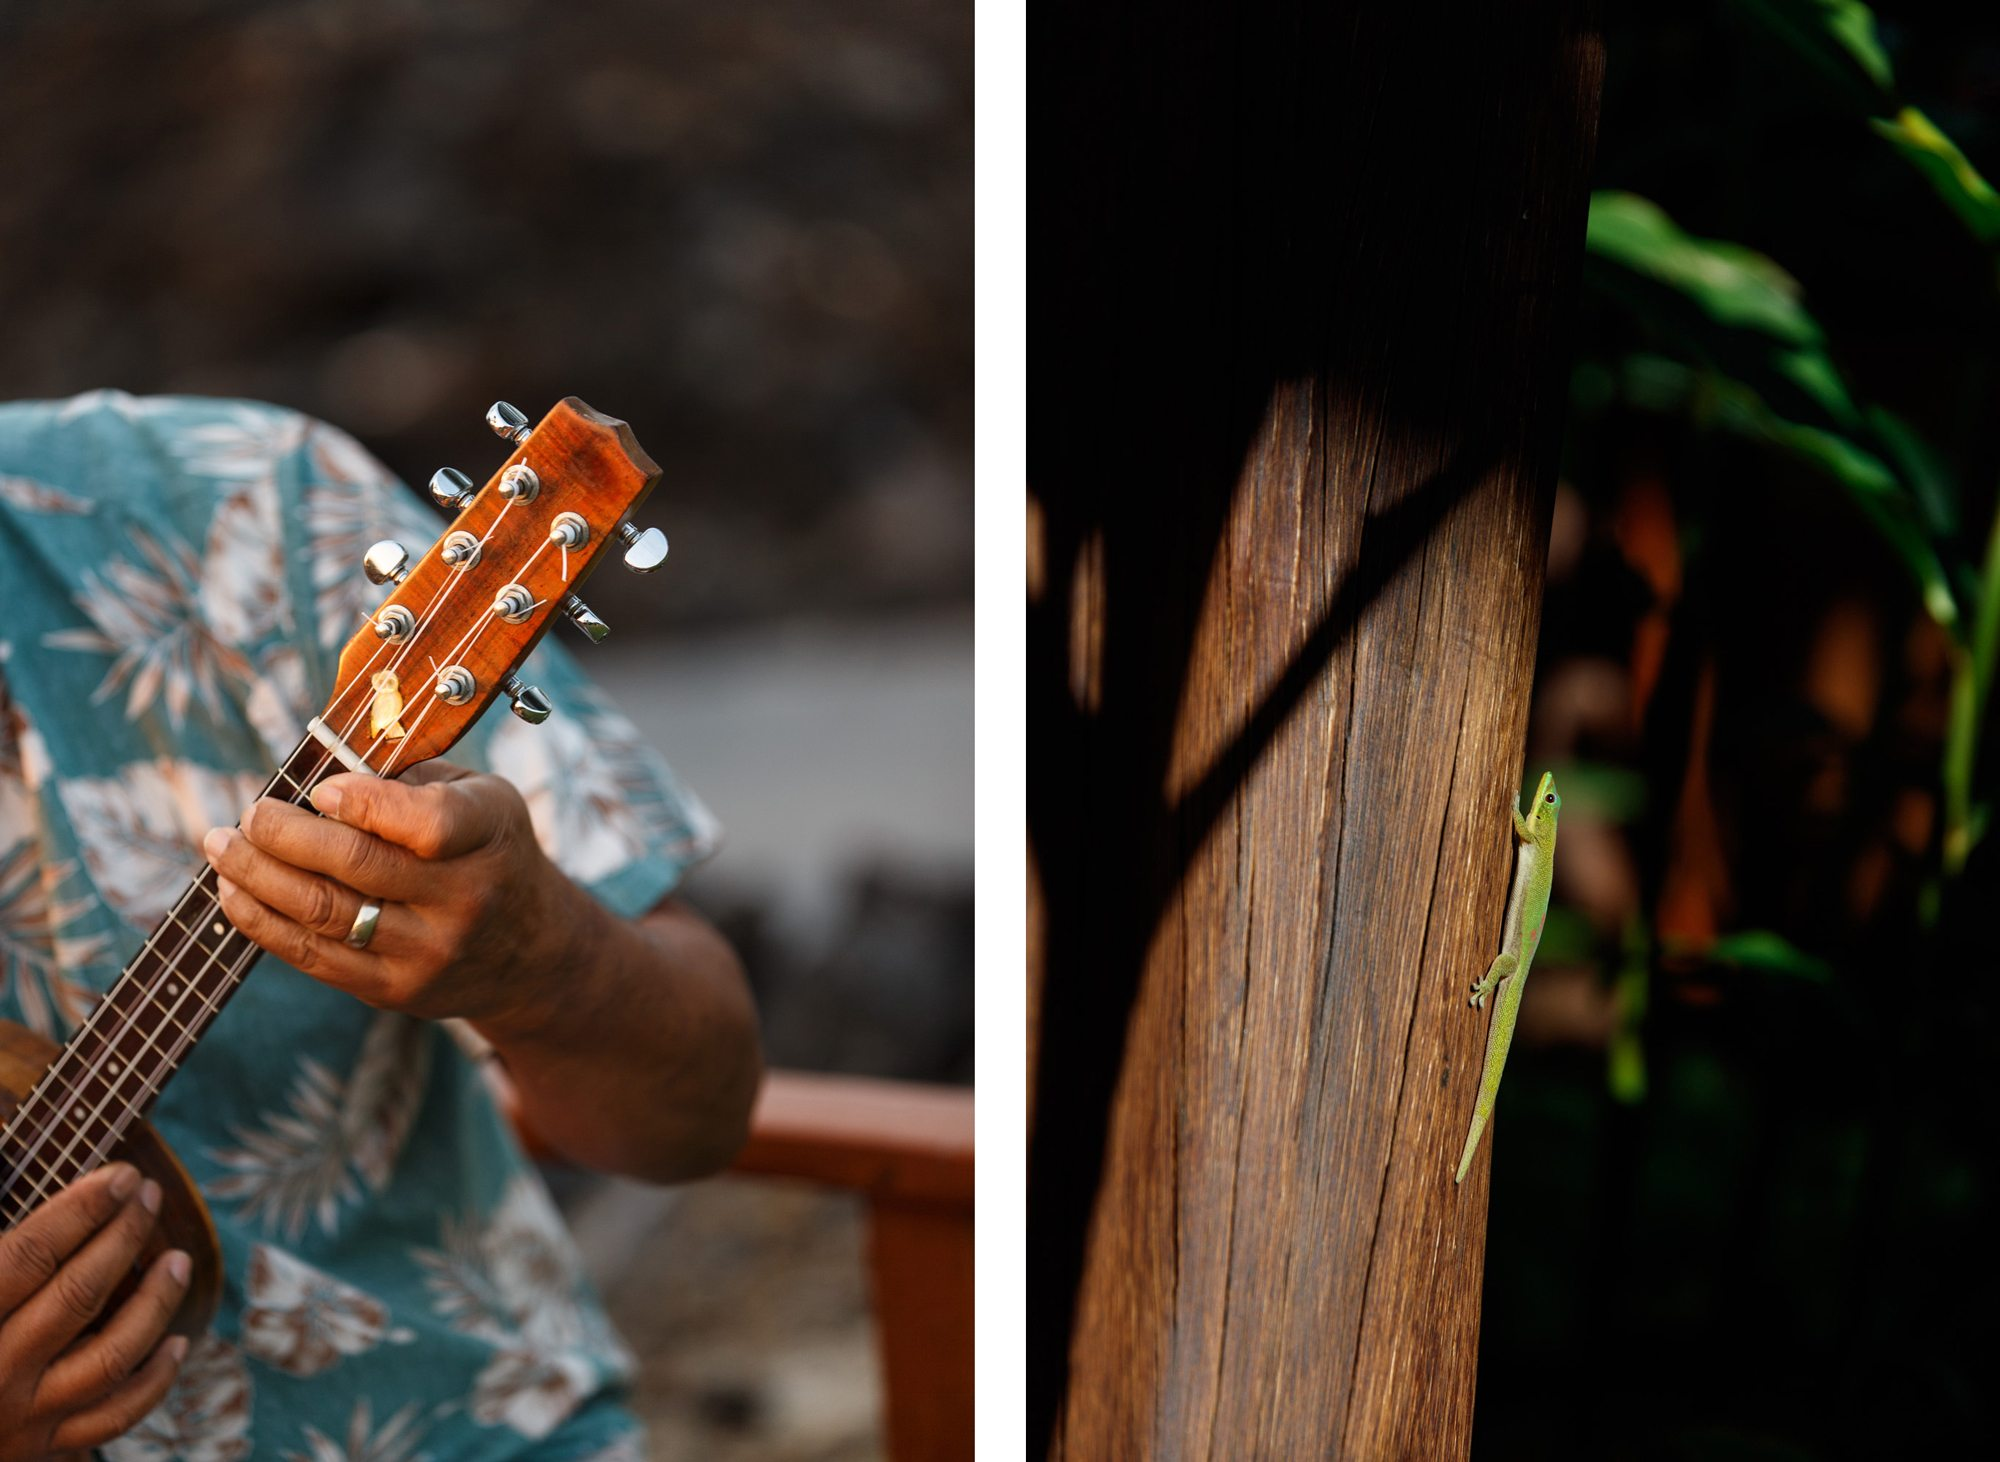 hualalai ukelele, small green lizard comparison